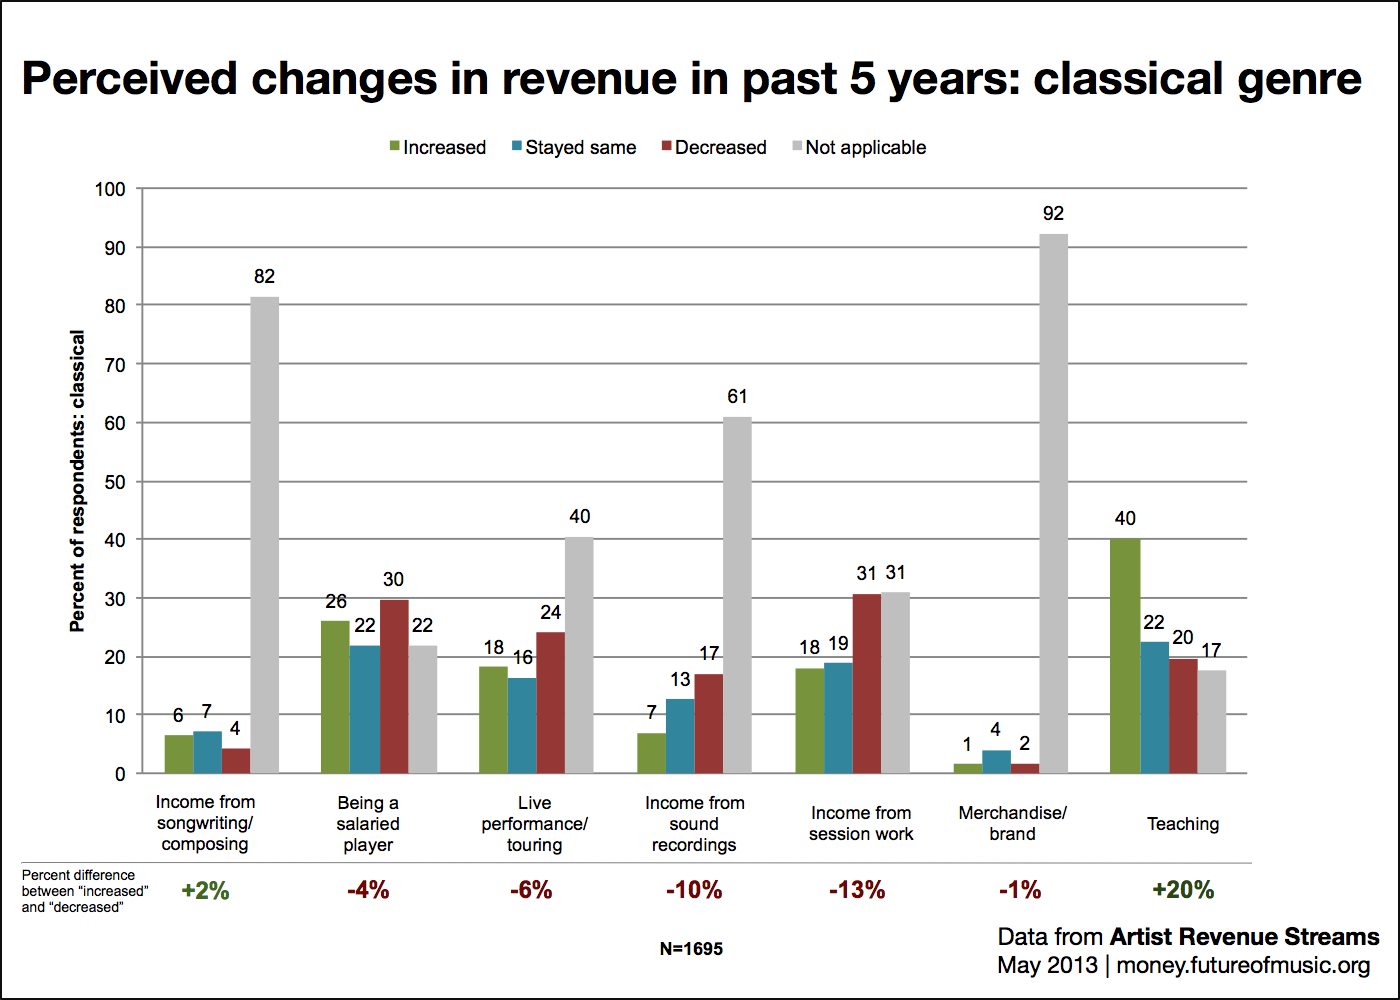 Perceived changes in revenue: classical